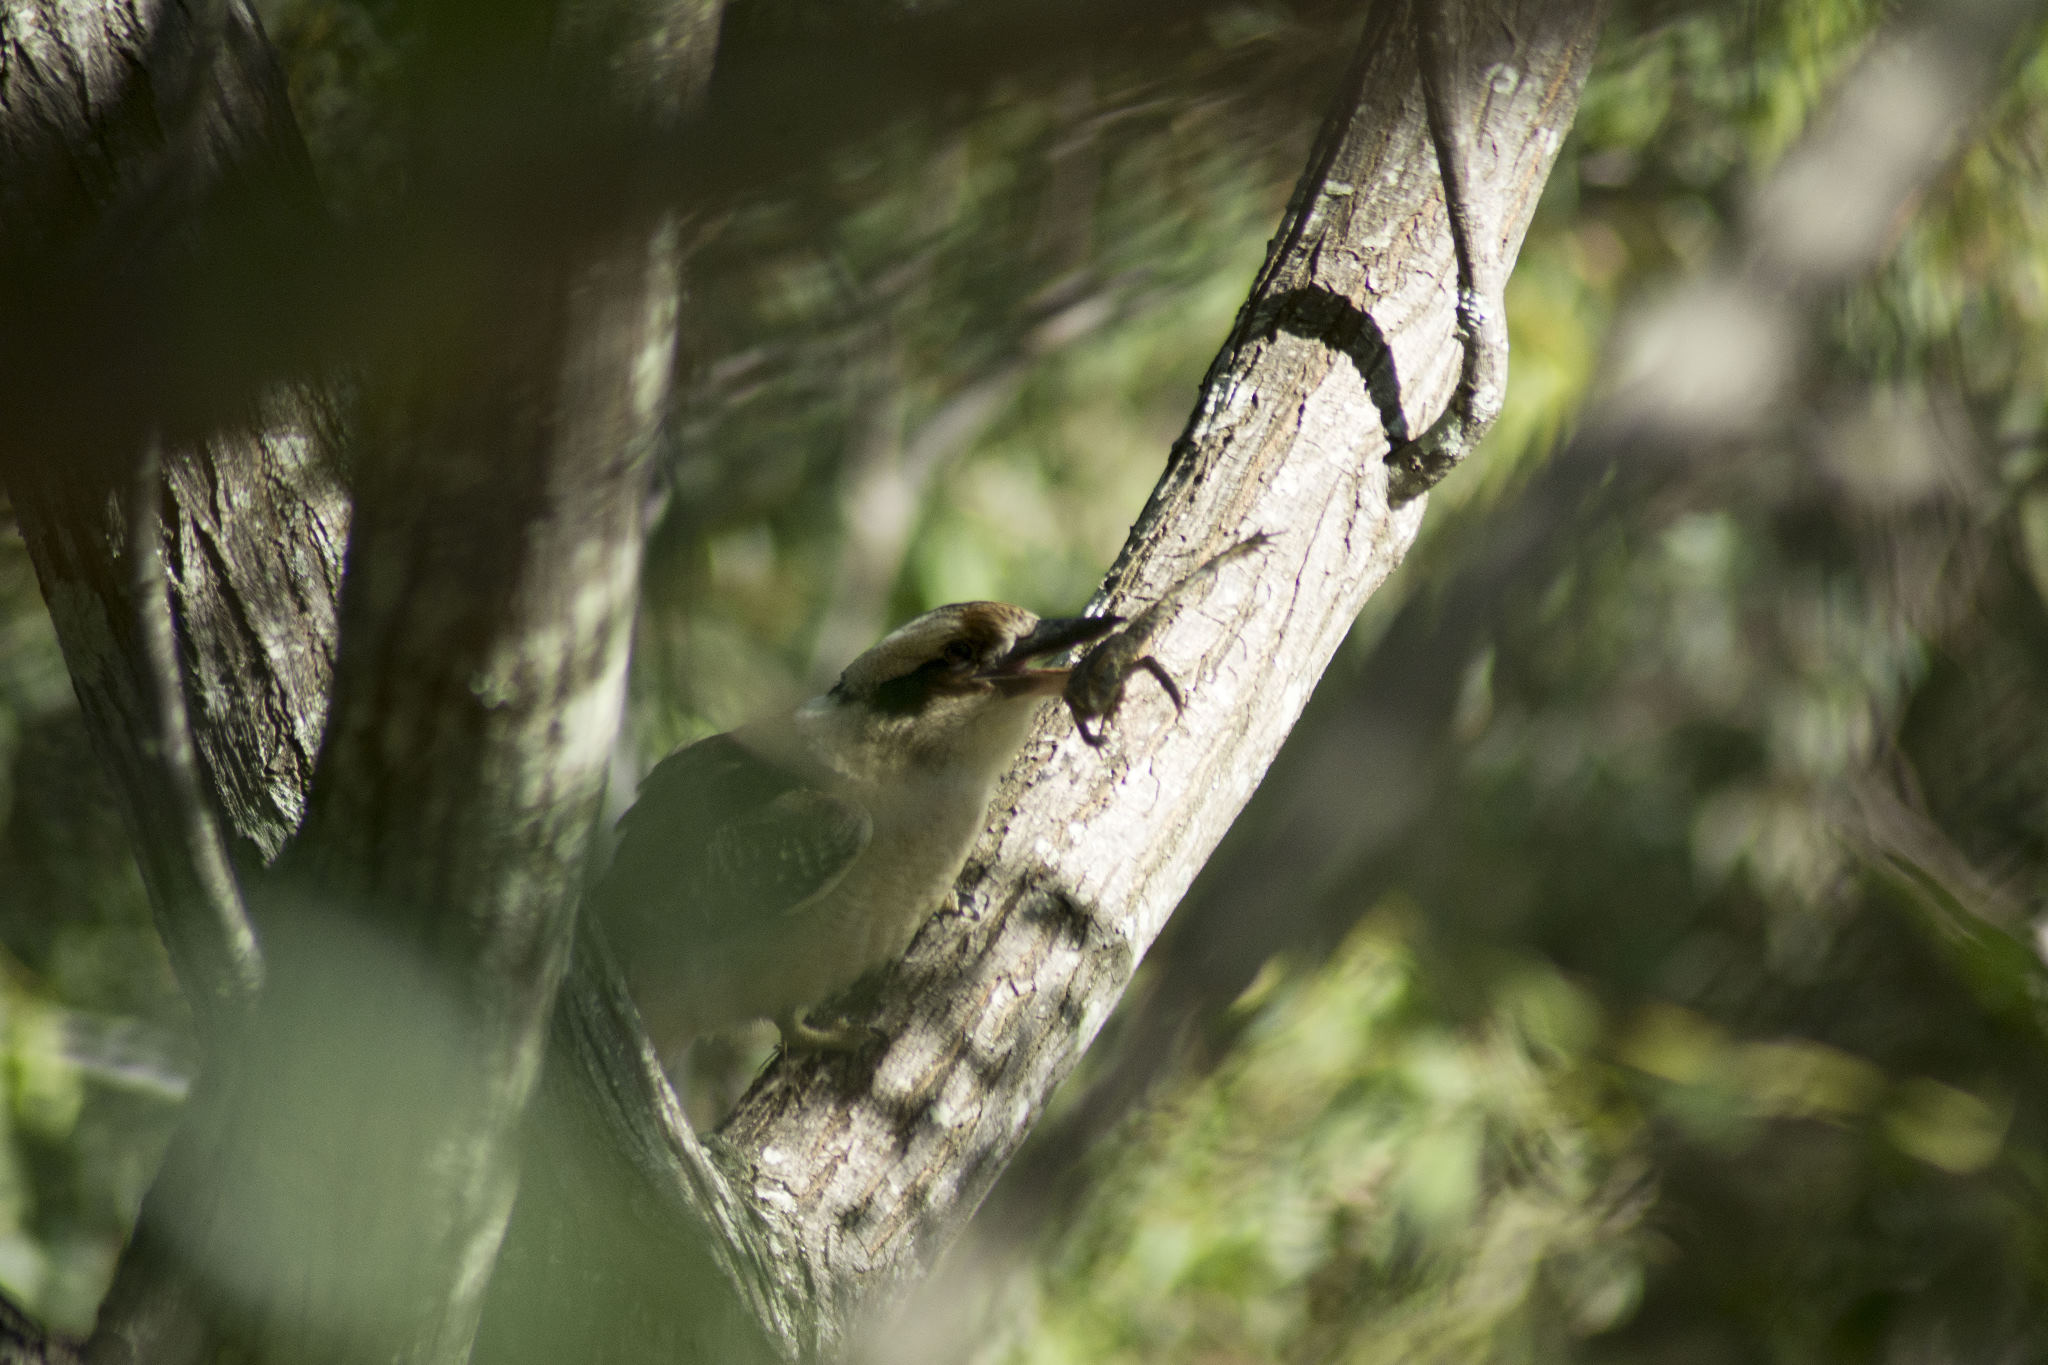 Kookaburra with a Cane Toad